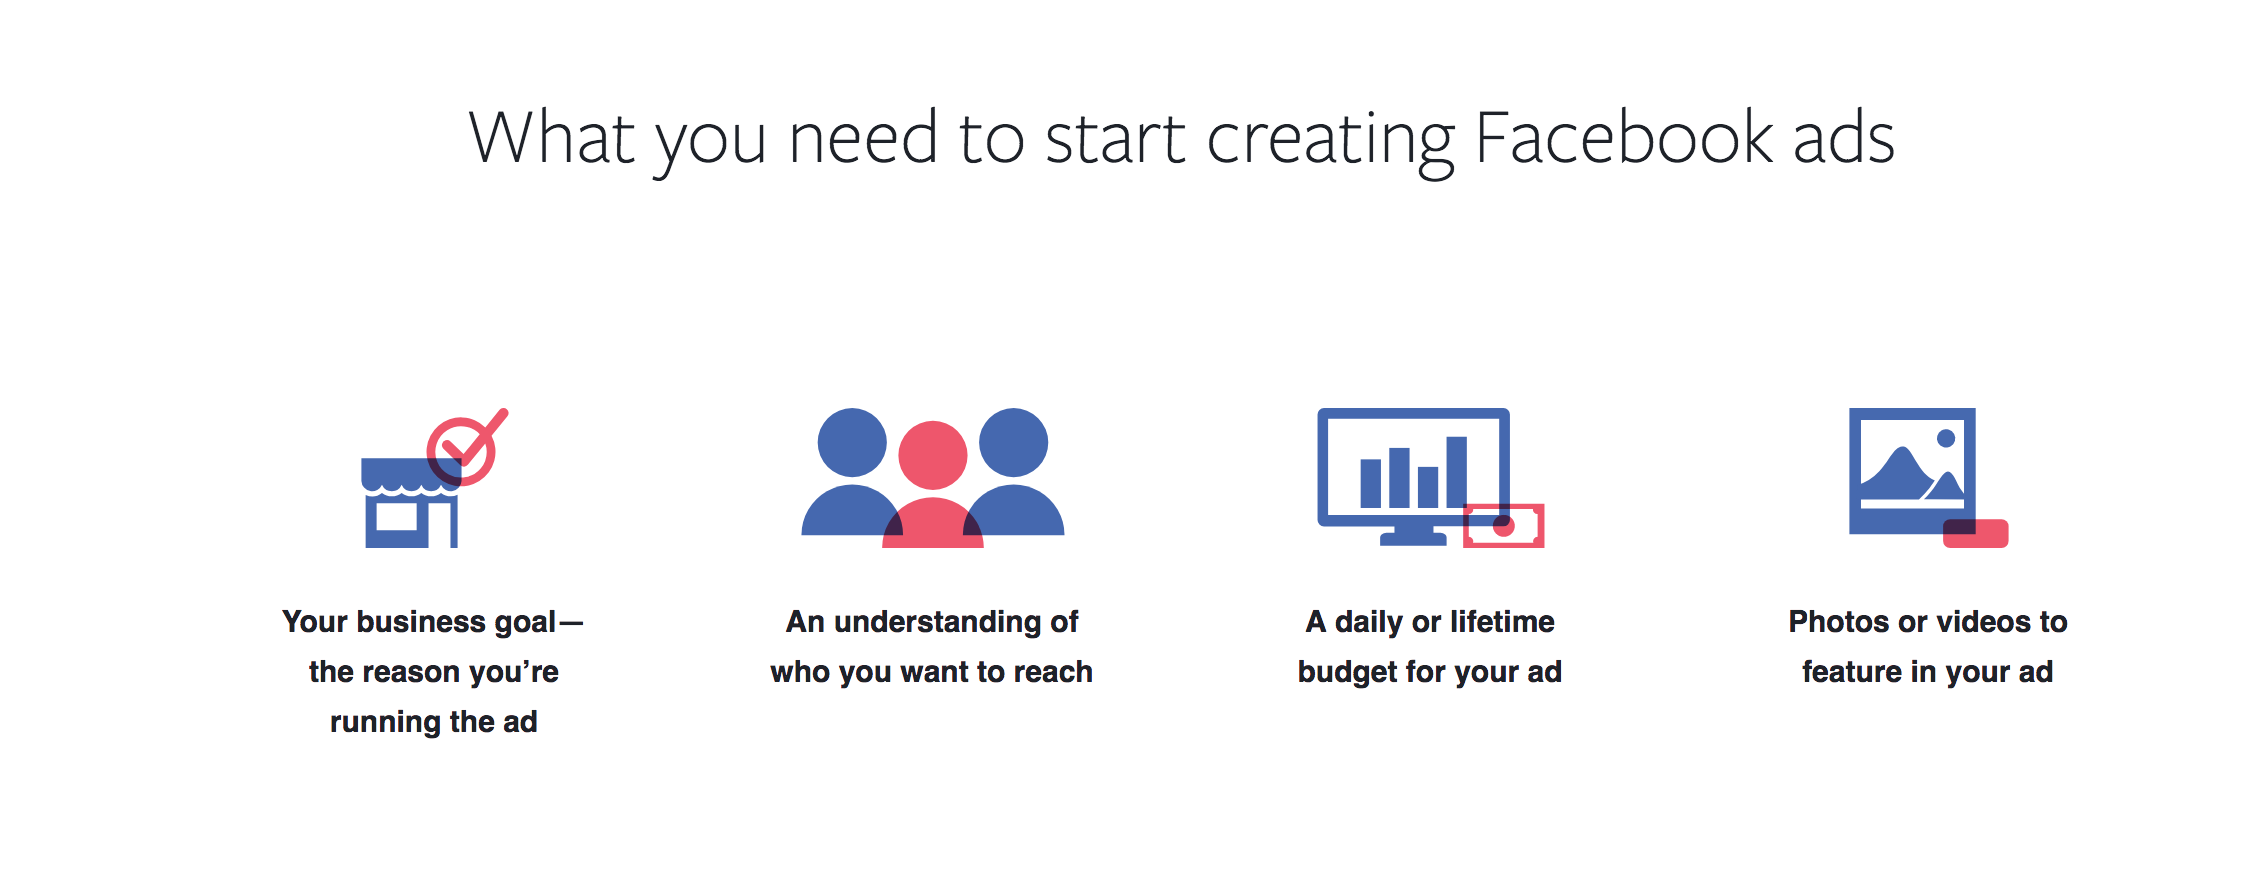 What You Need To Start Creating Facebook Ads